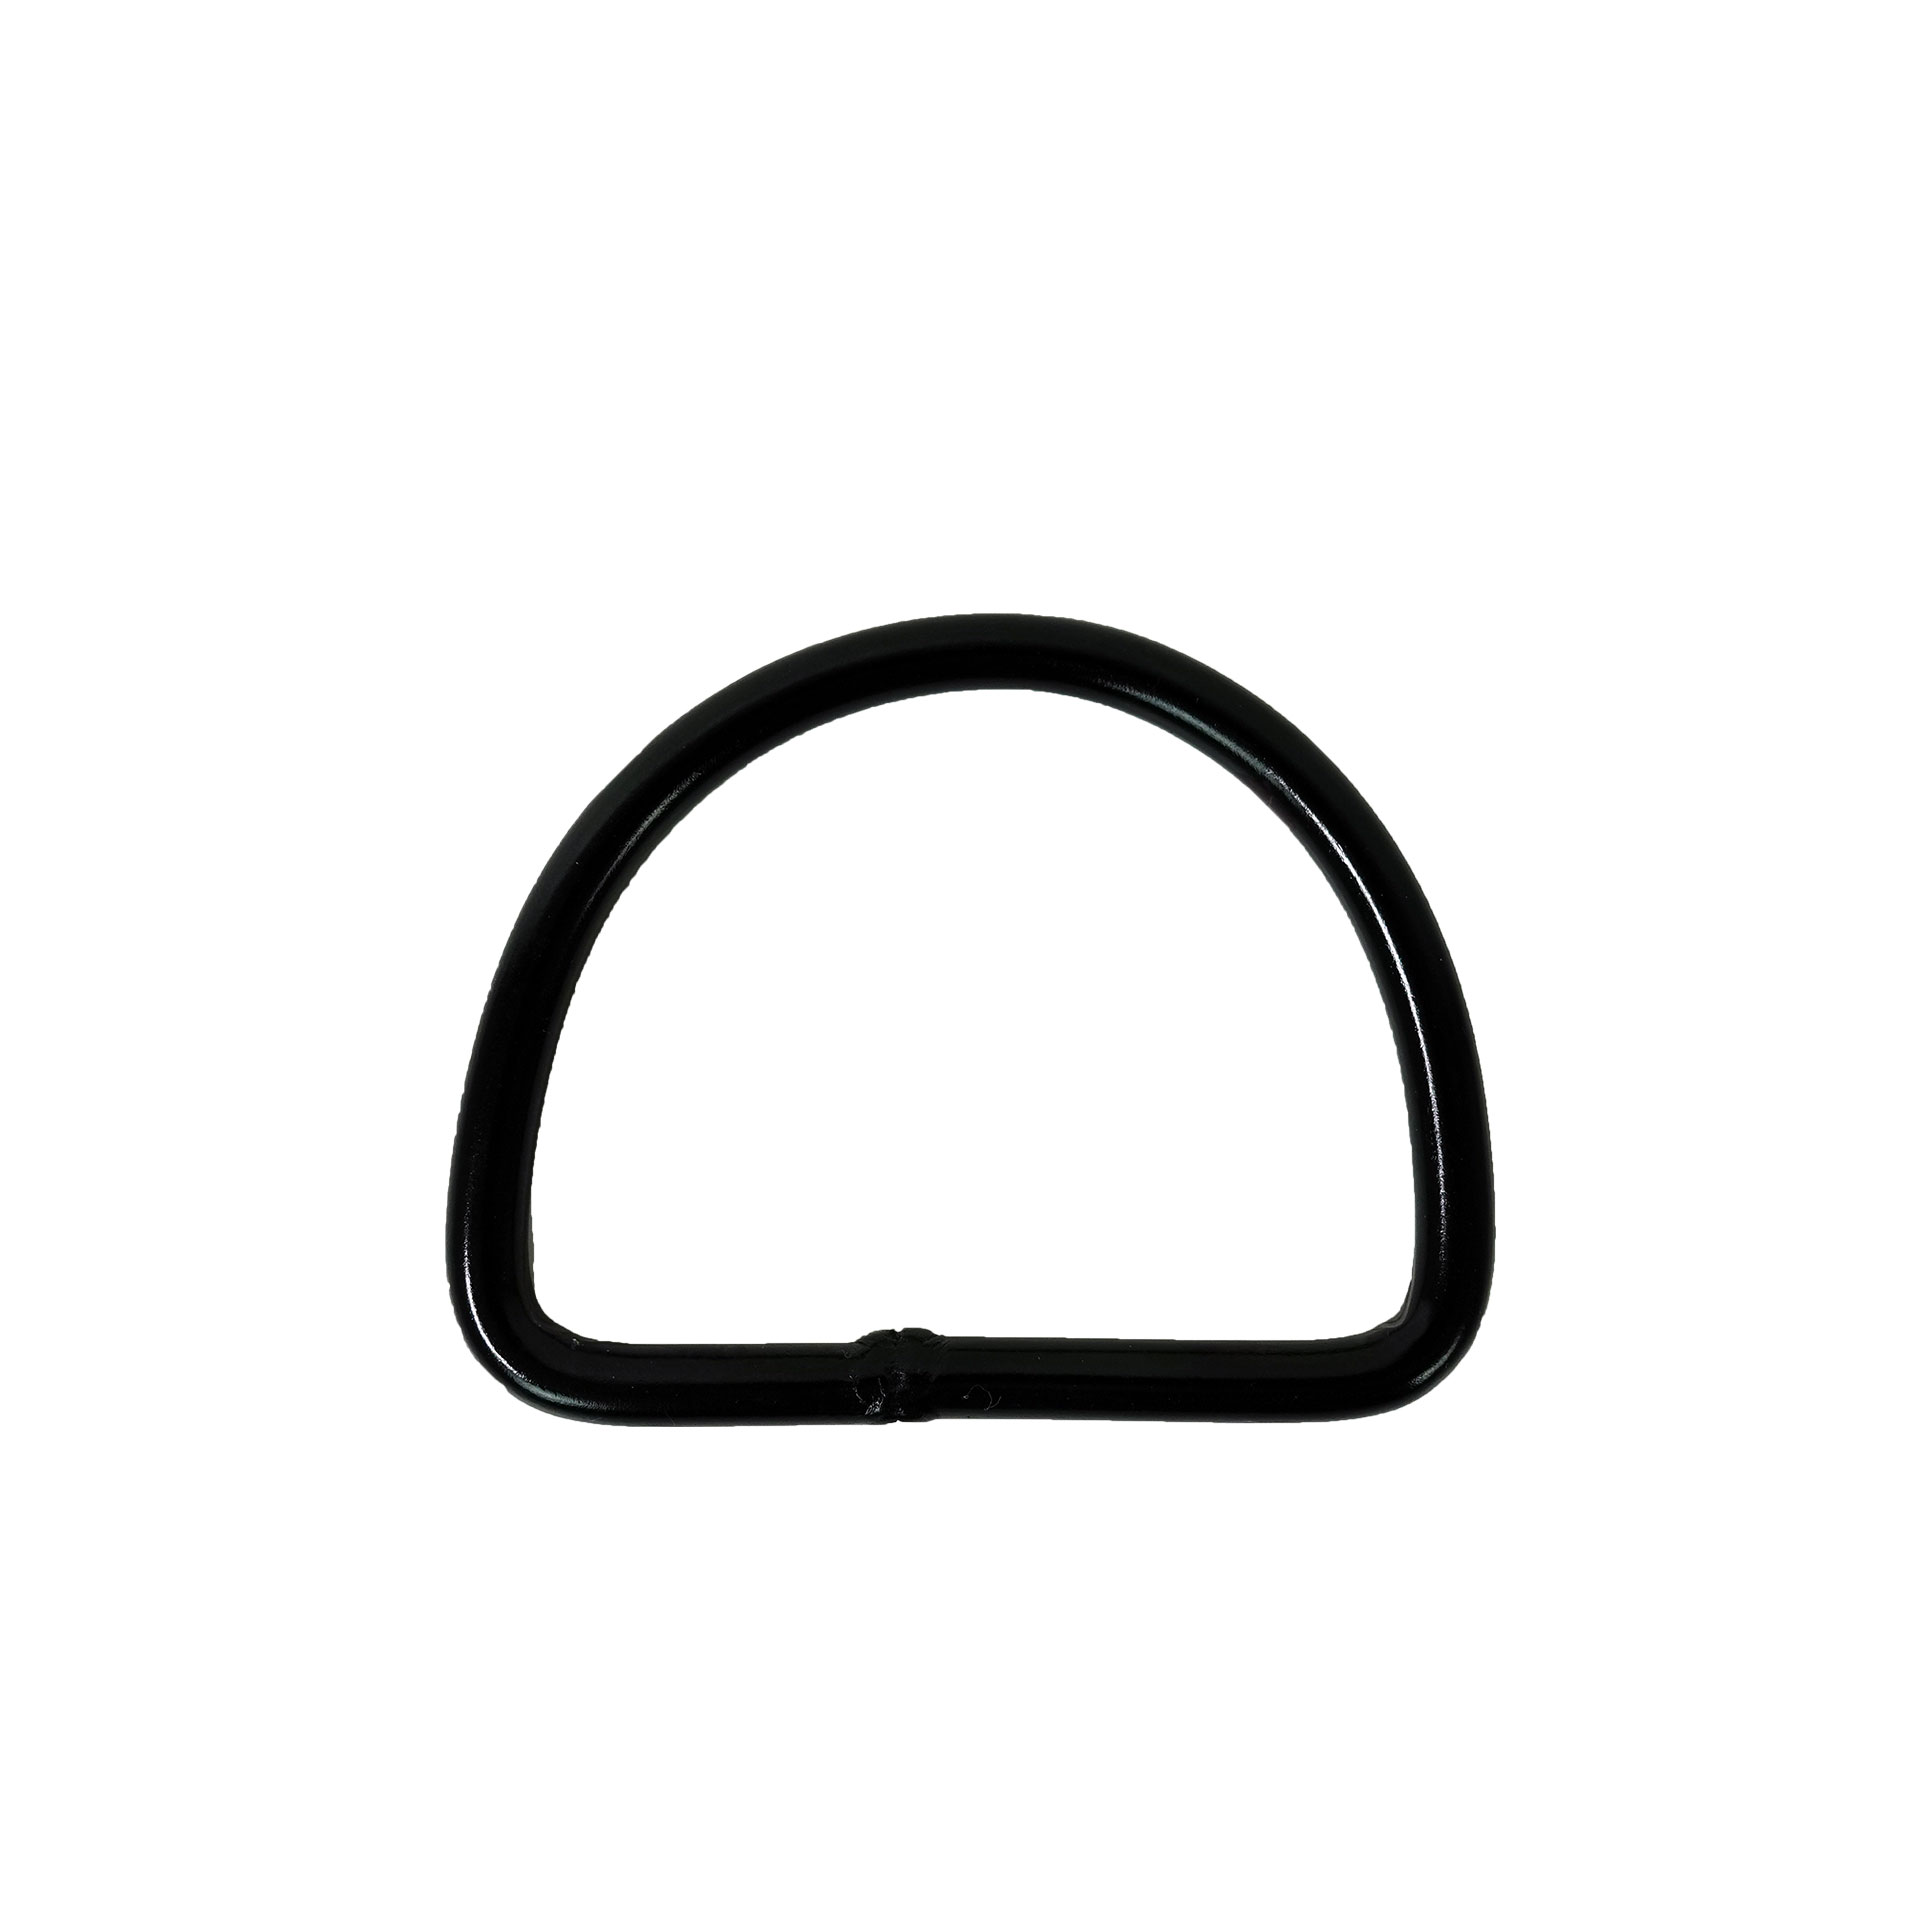 D-Ring Straight (5 CM / 2 IN)